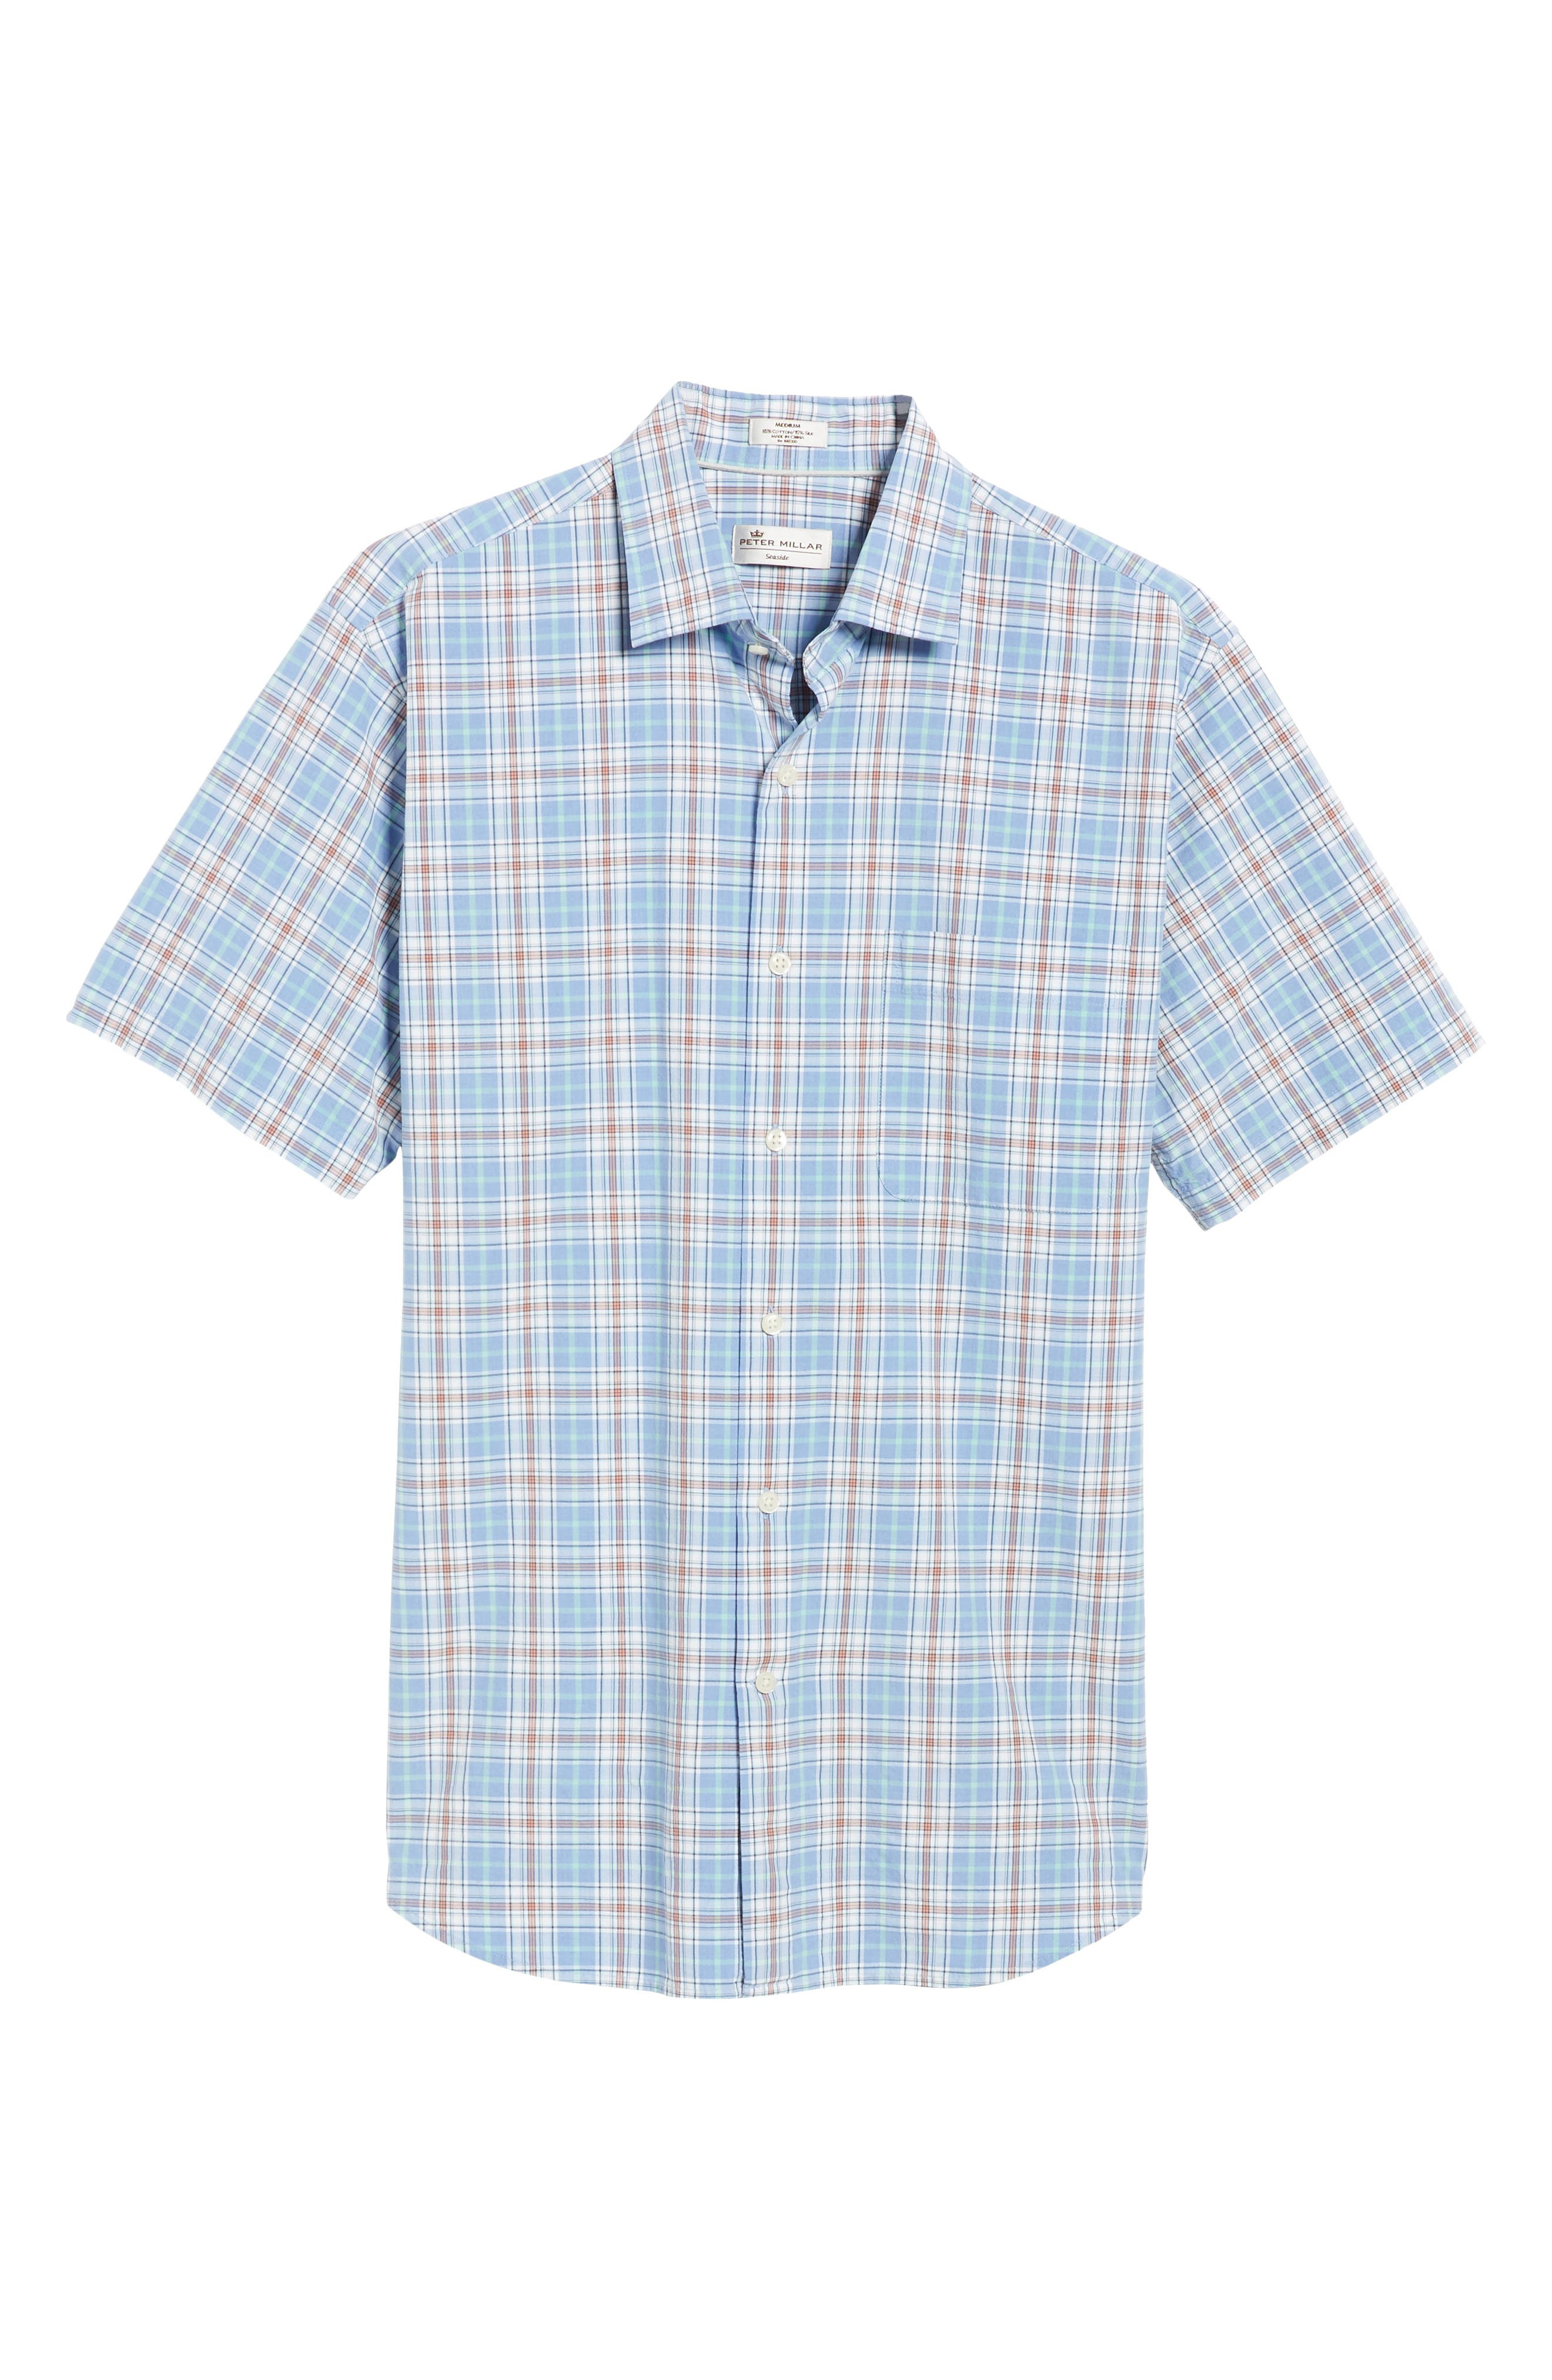 Rockport Plaid Sport Shirt,                             Alternate thumbnail 6, color,                             Bonnet